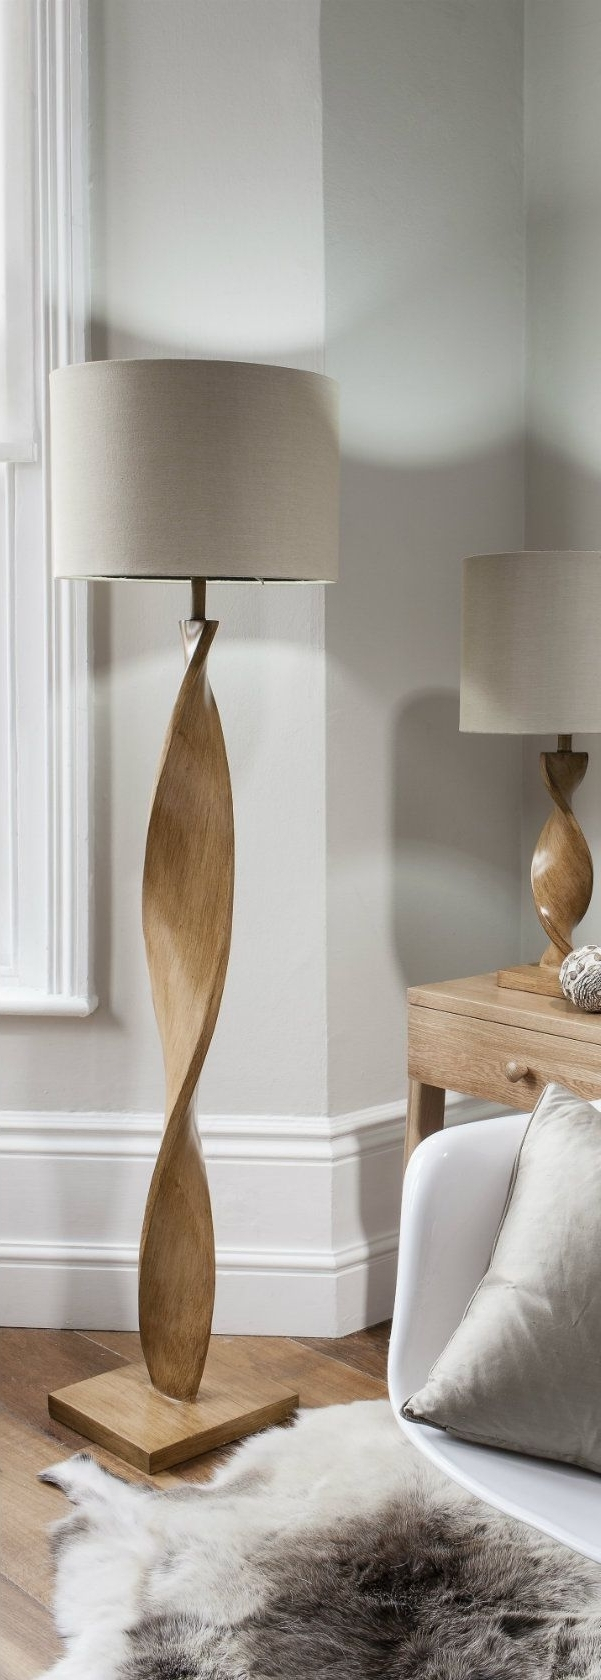 Living Room Lamp Ideas – Vitaminshoppe – Vitaminshoppe Intended For Well Liked Houzz Living Room Table Lamps (View 4 of 20)